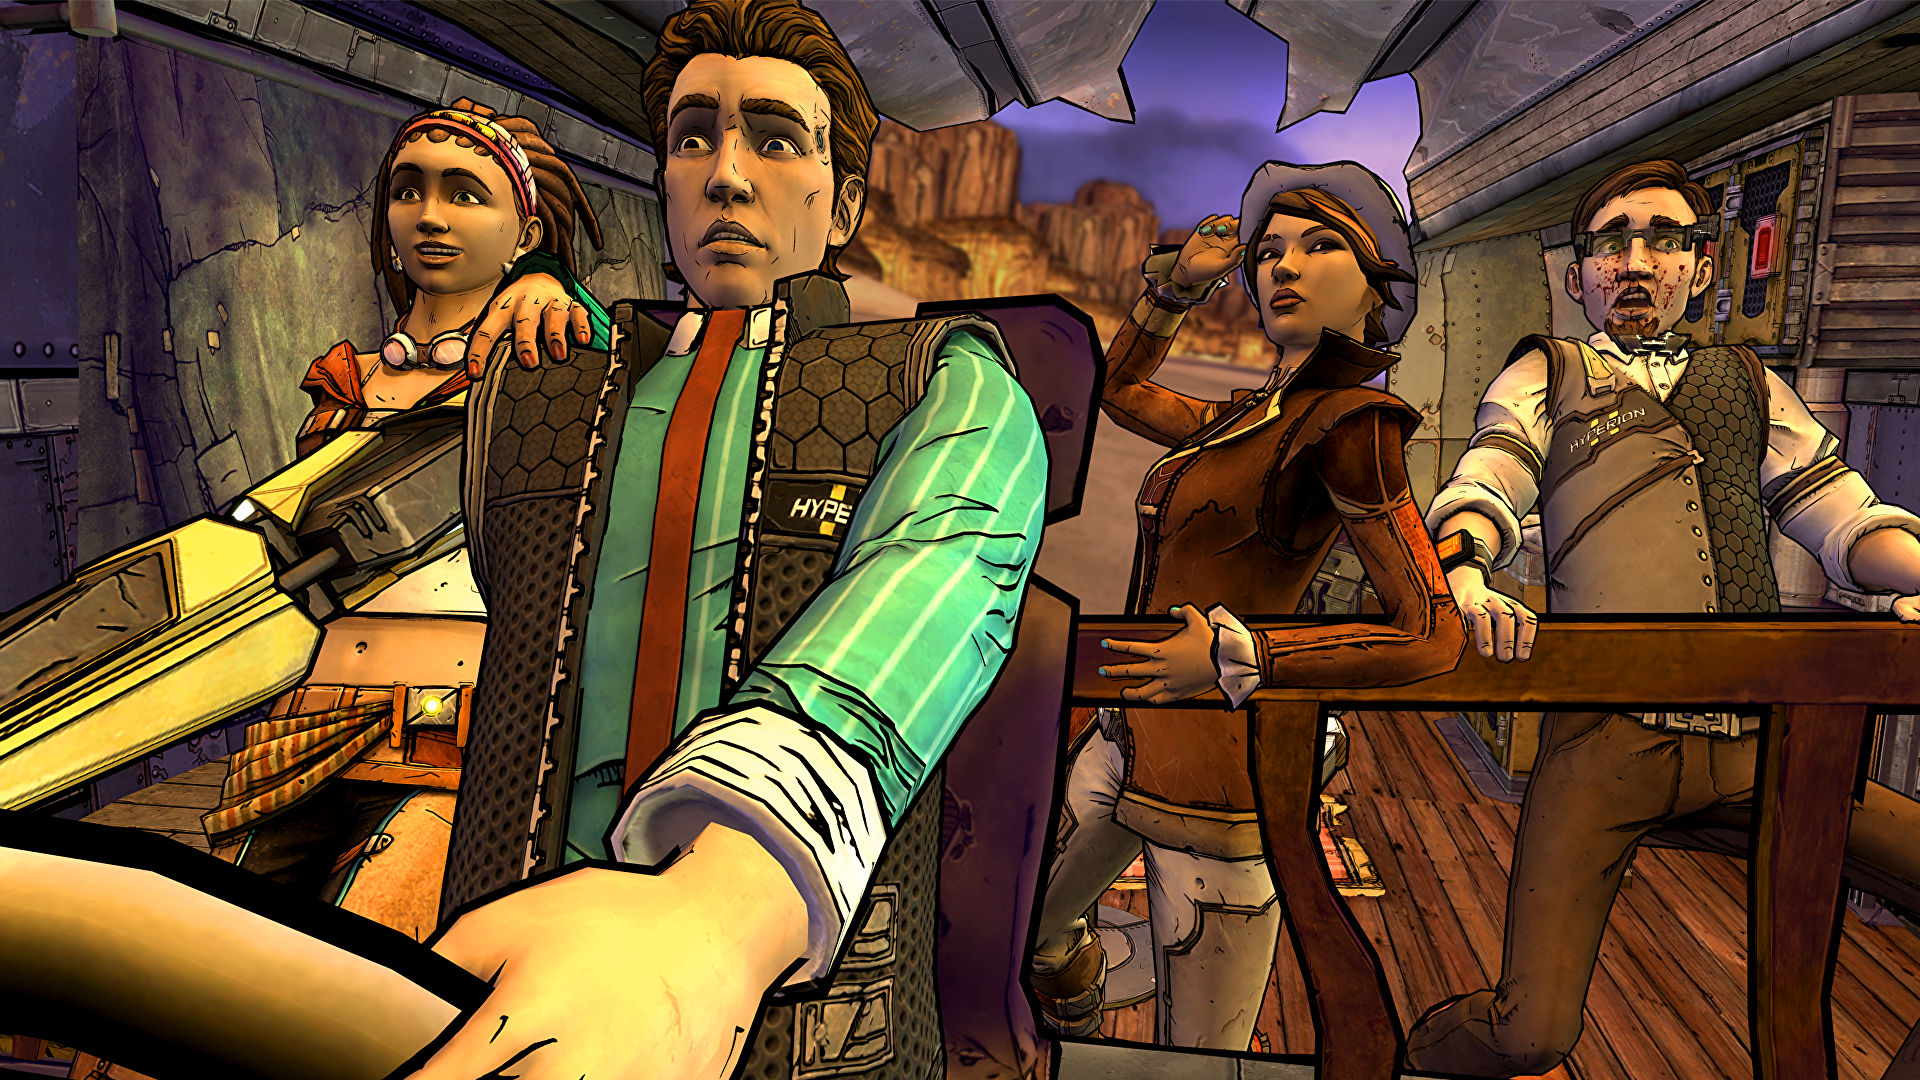 Tales From The Borderlands returns to digital stores next week